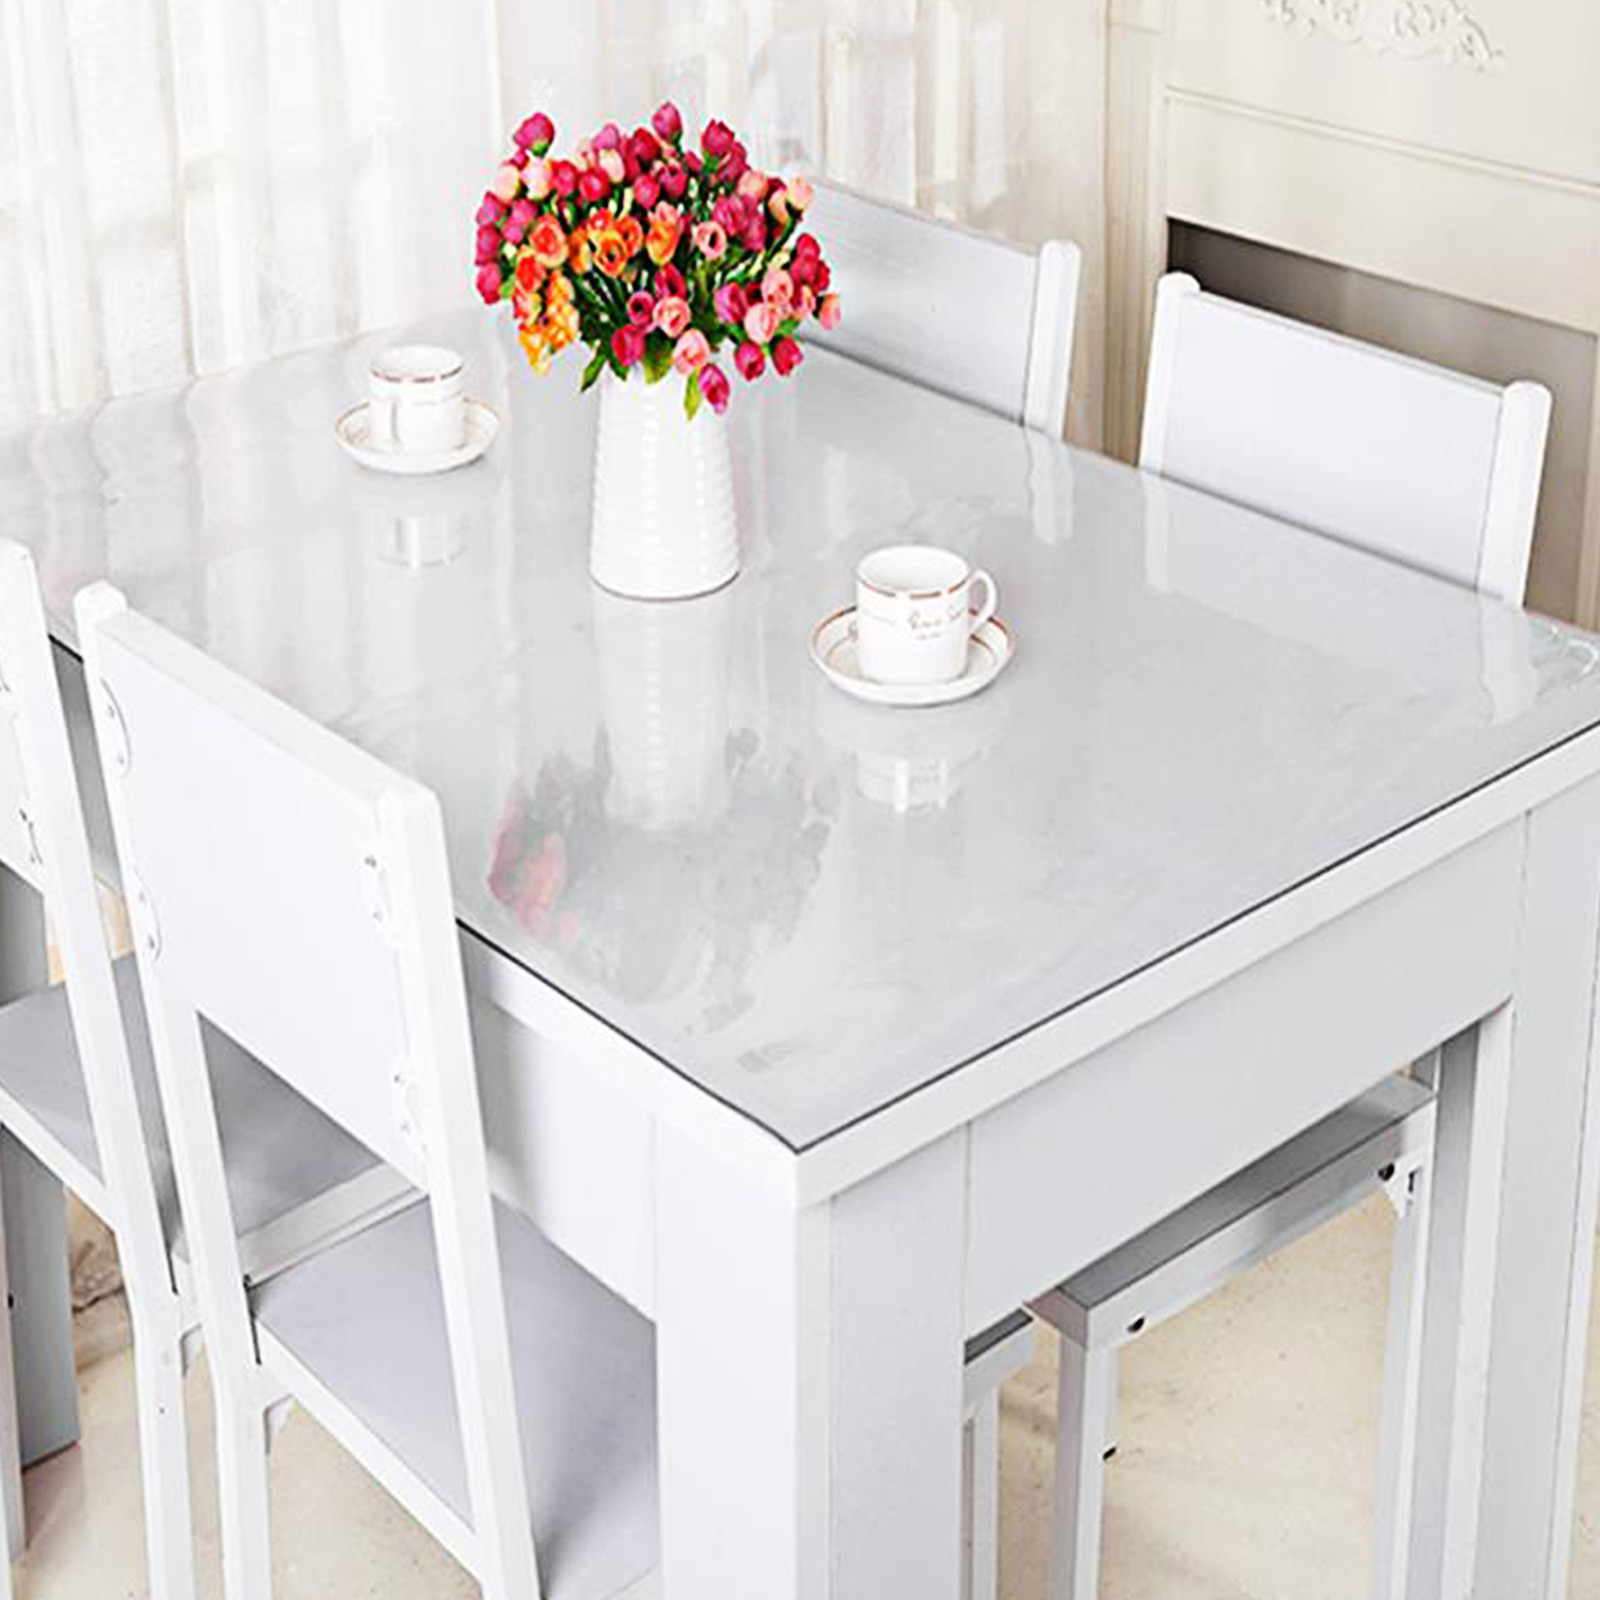 Details About Waterproof Clear Plastic Pvc Tablecloth Transpa Protector Dining Table Cover